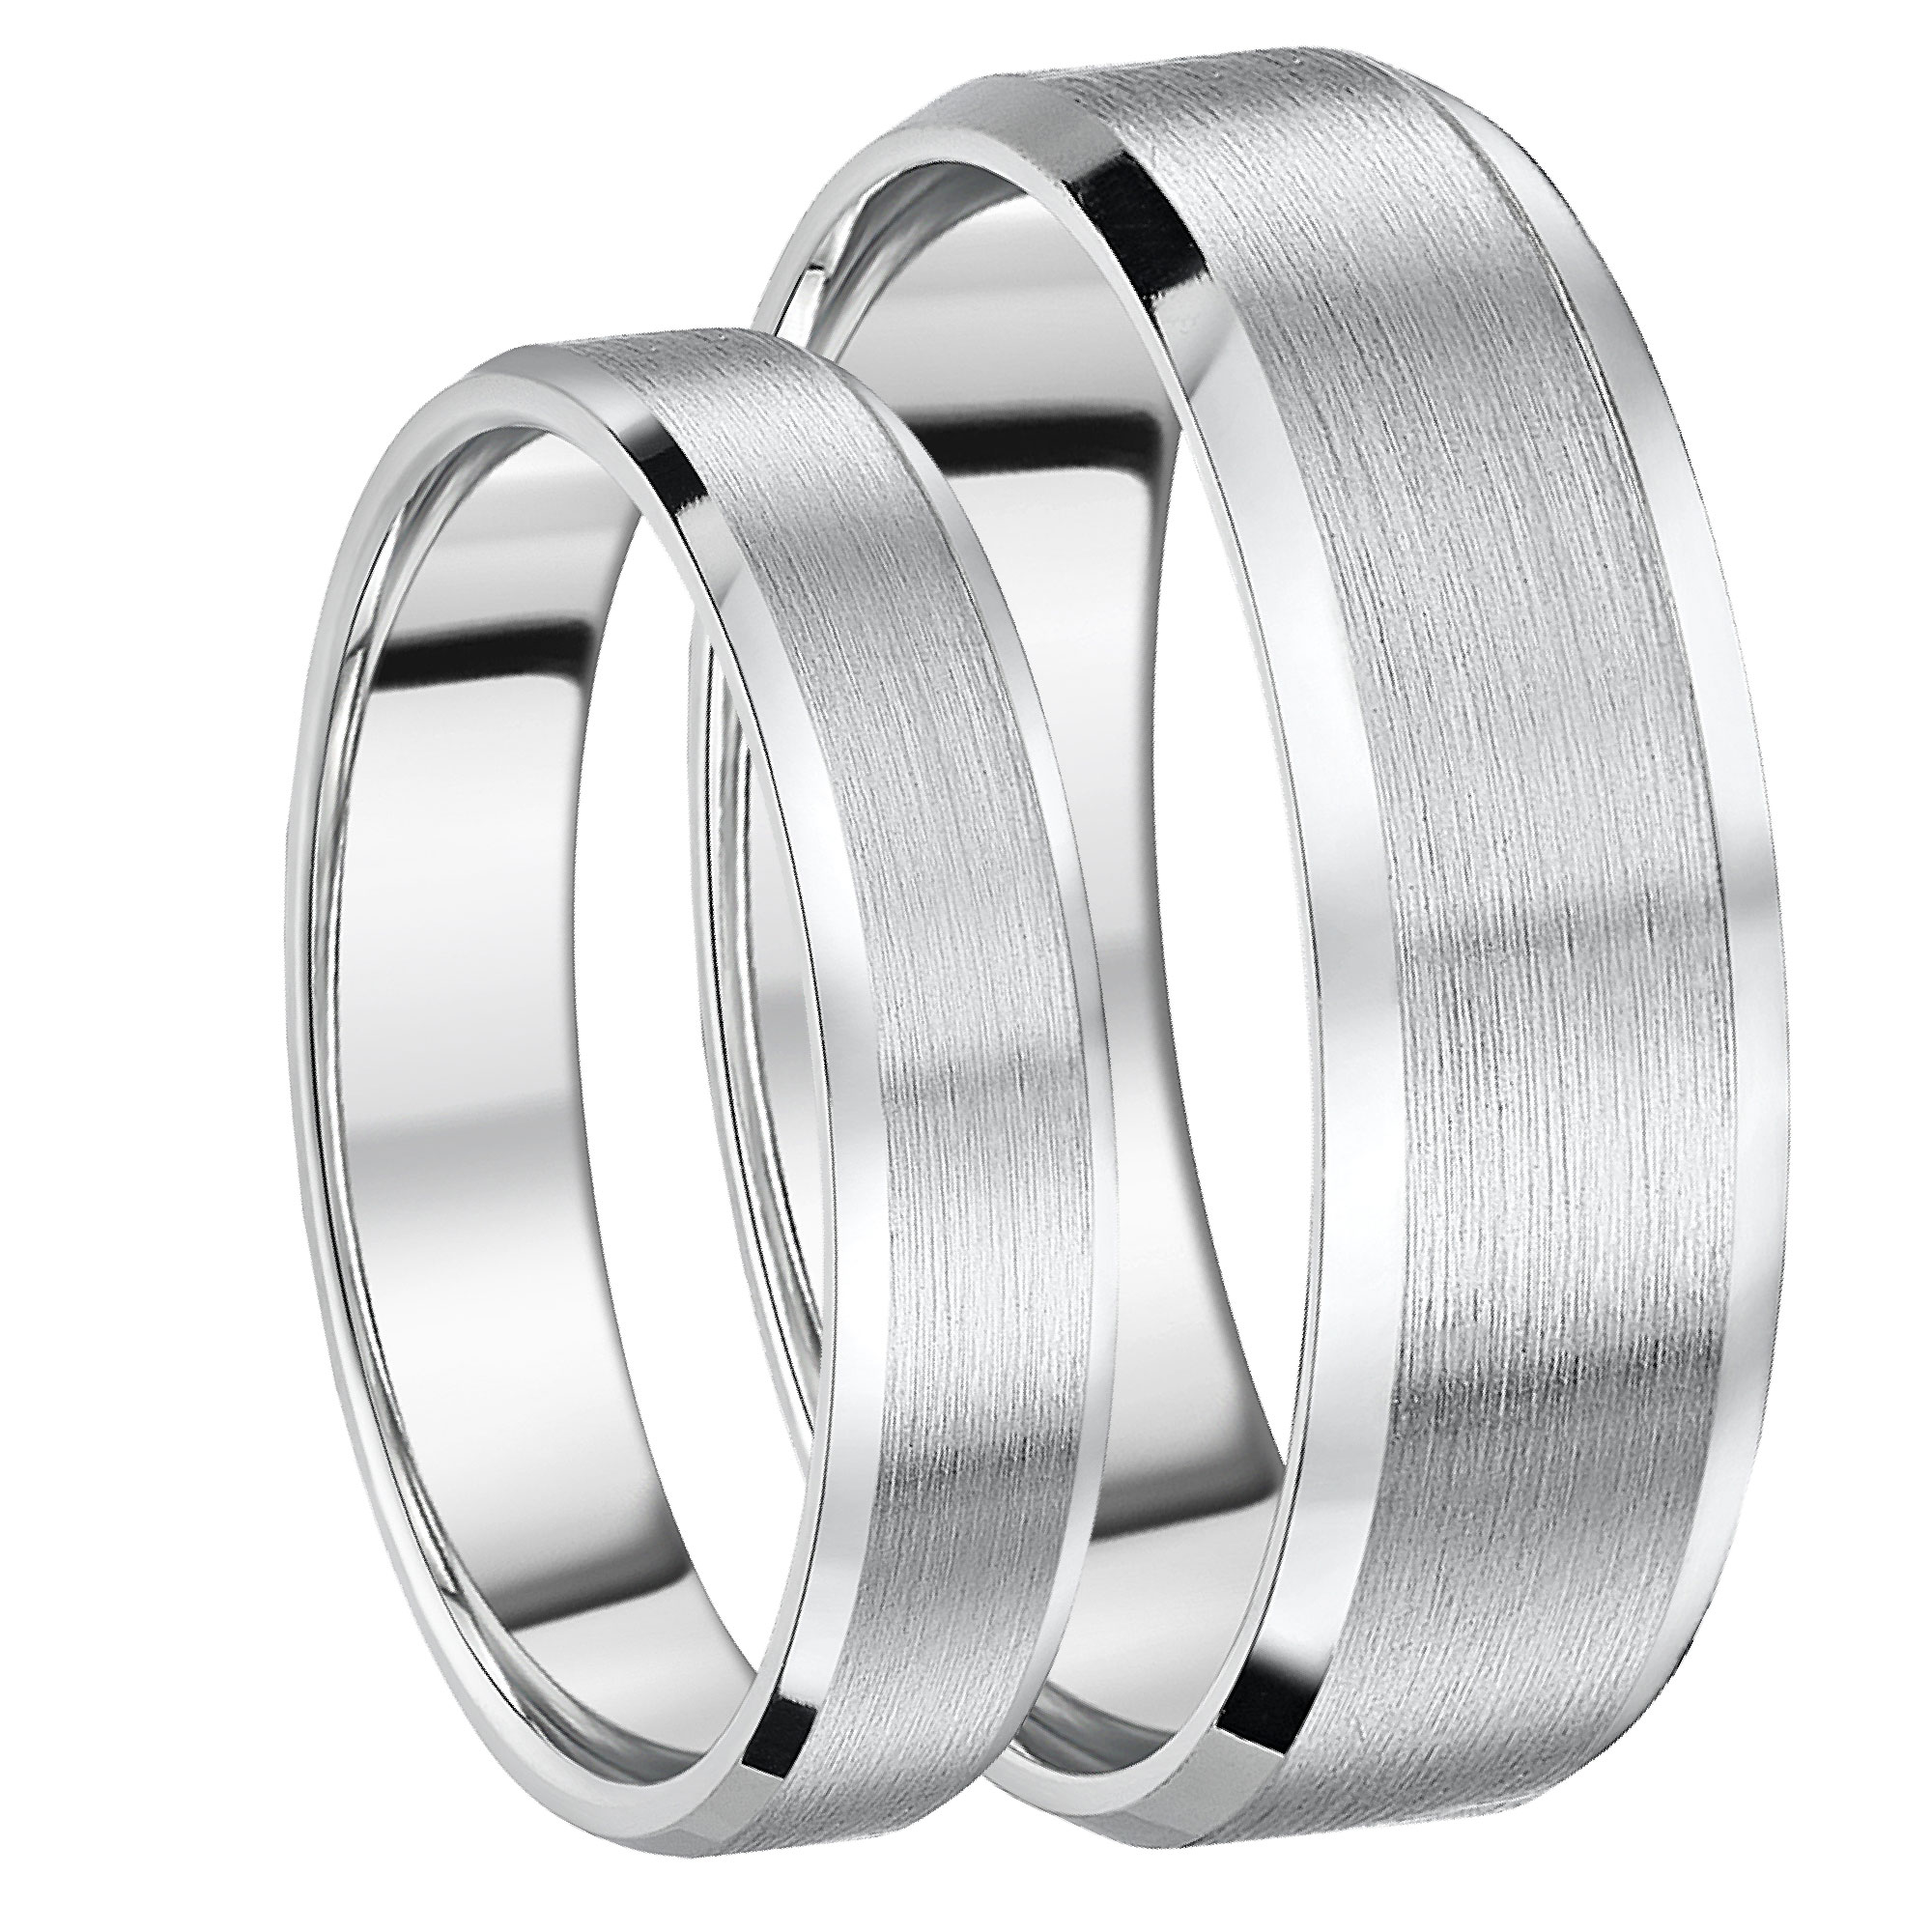 This is a graphic of His and Hers Rings Bevelled Edge Titanium Engagement Wedding Rings